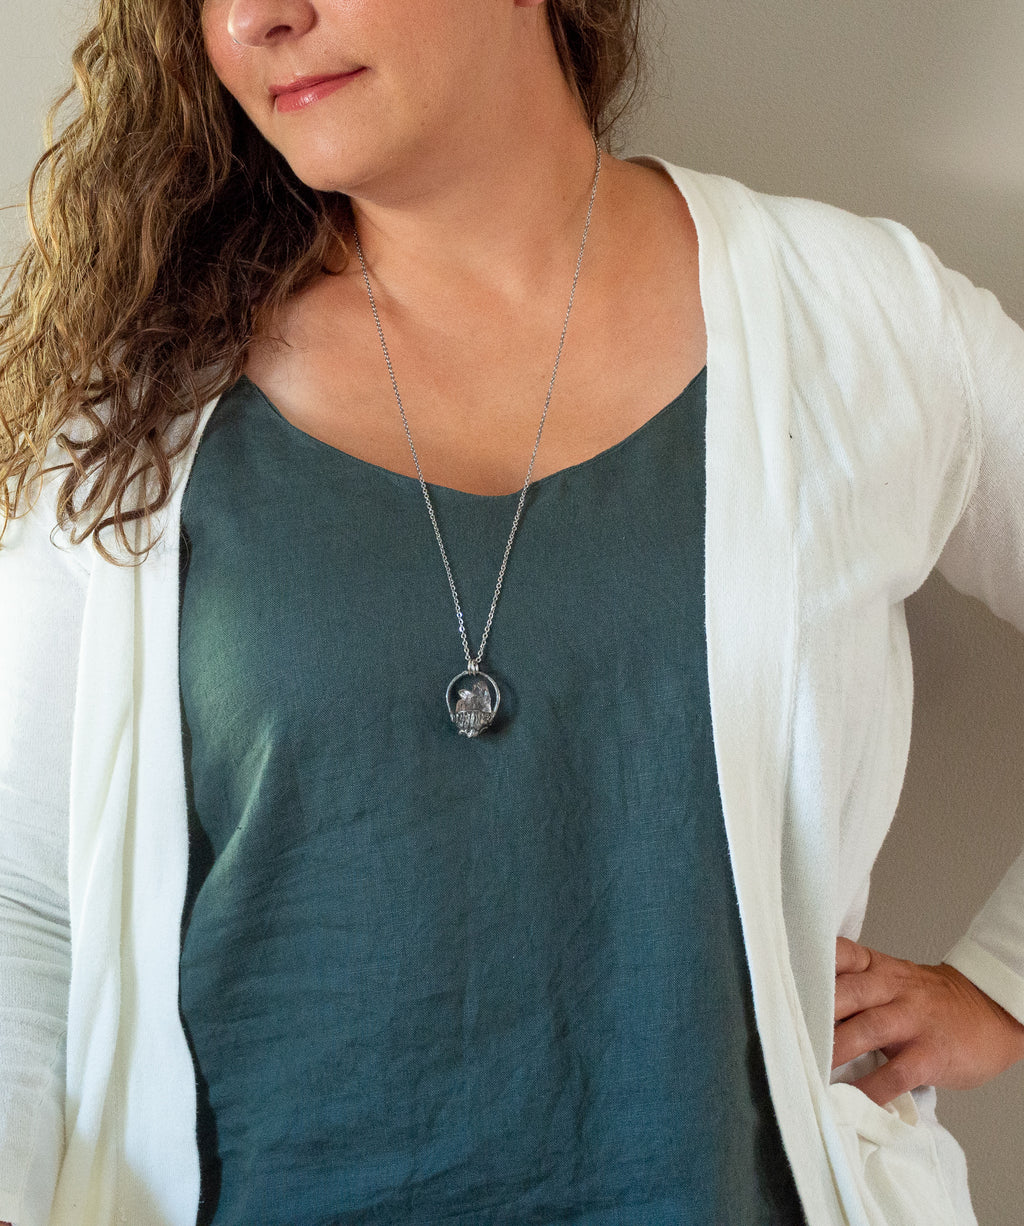 rare light pink brazilian rose quartz gemstone talisman necklace on woman with blue top and white cardigan